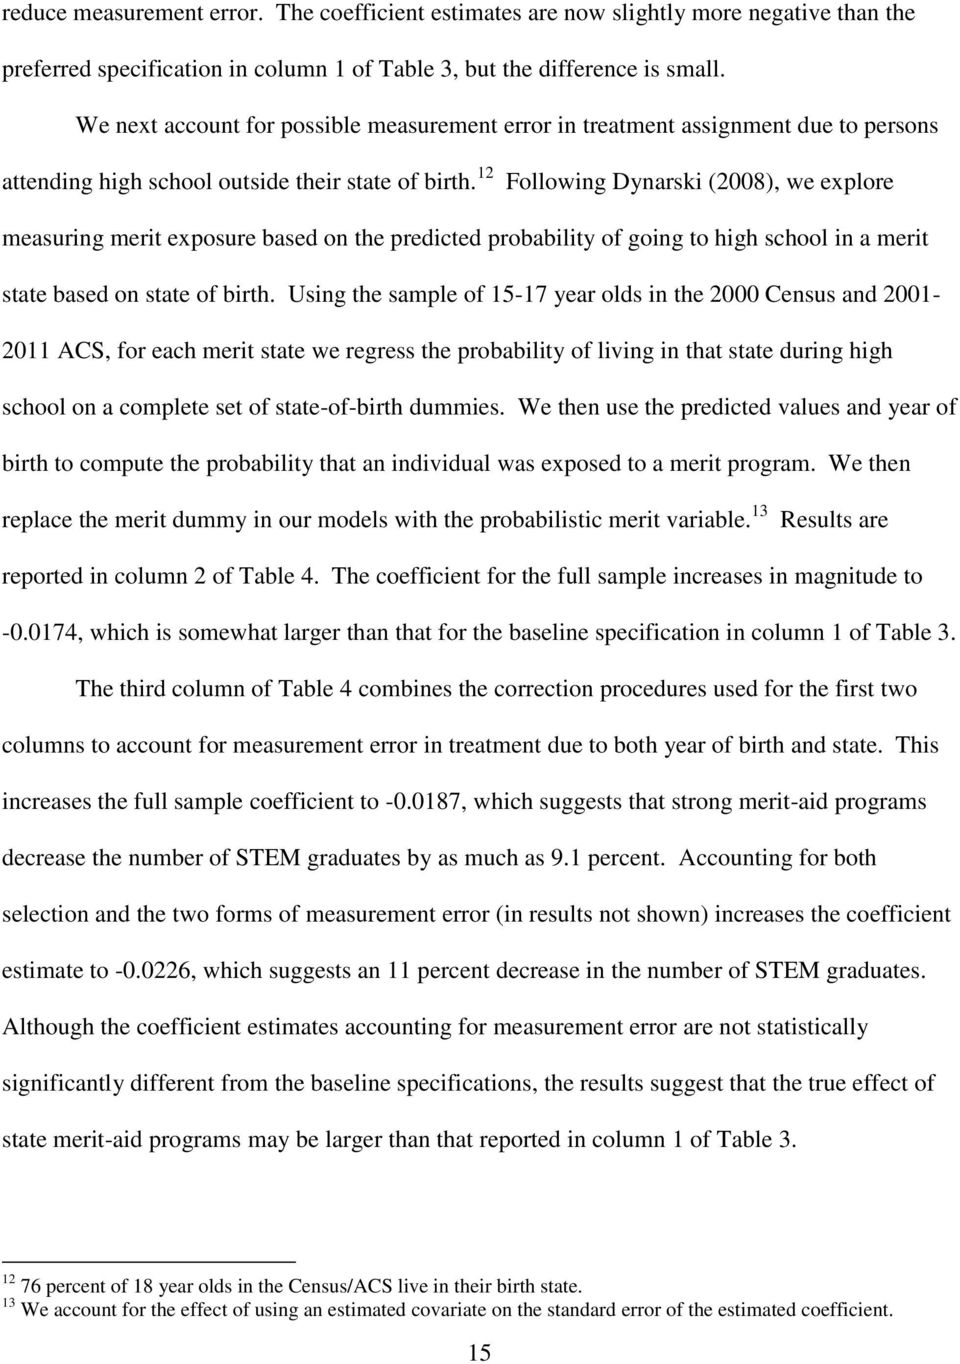 12 Following Dynarski (2008), we explore measuring merit exposure based on the predicted probability of going to high school in a merit state based on state of birth.